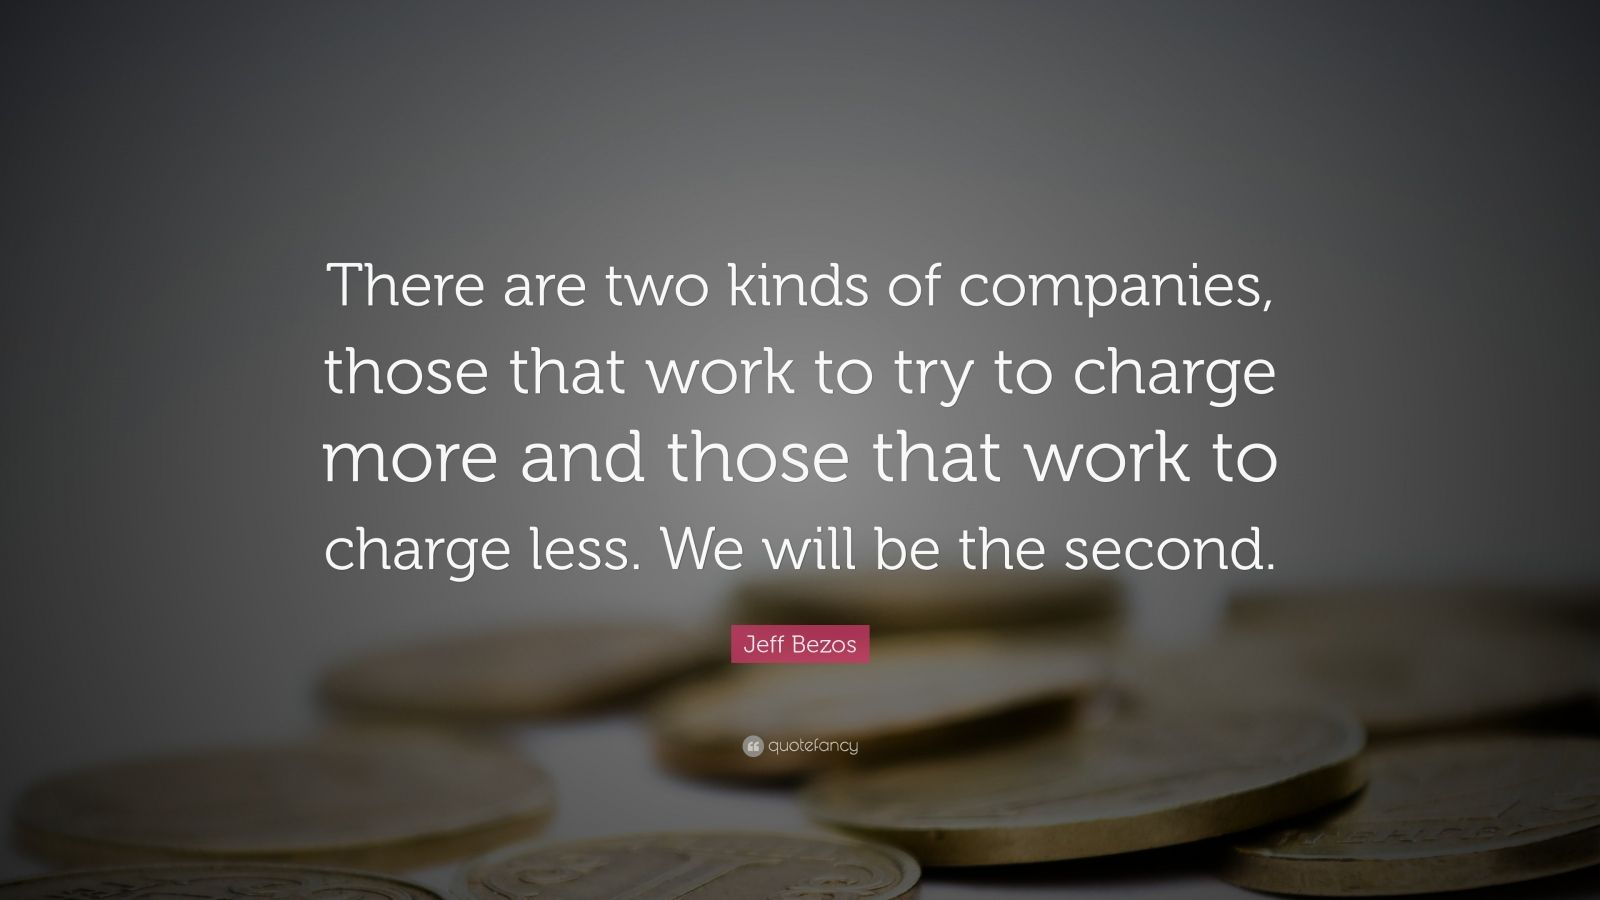 """Jeff Bezos Quote: """"There are two kinds of companies, those that work to try to charge more and those that work to charge less. We will be the second."""""""